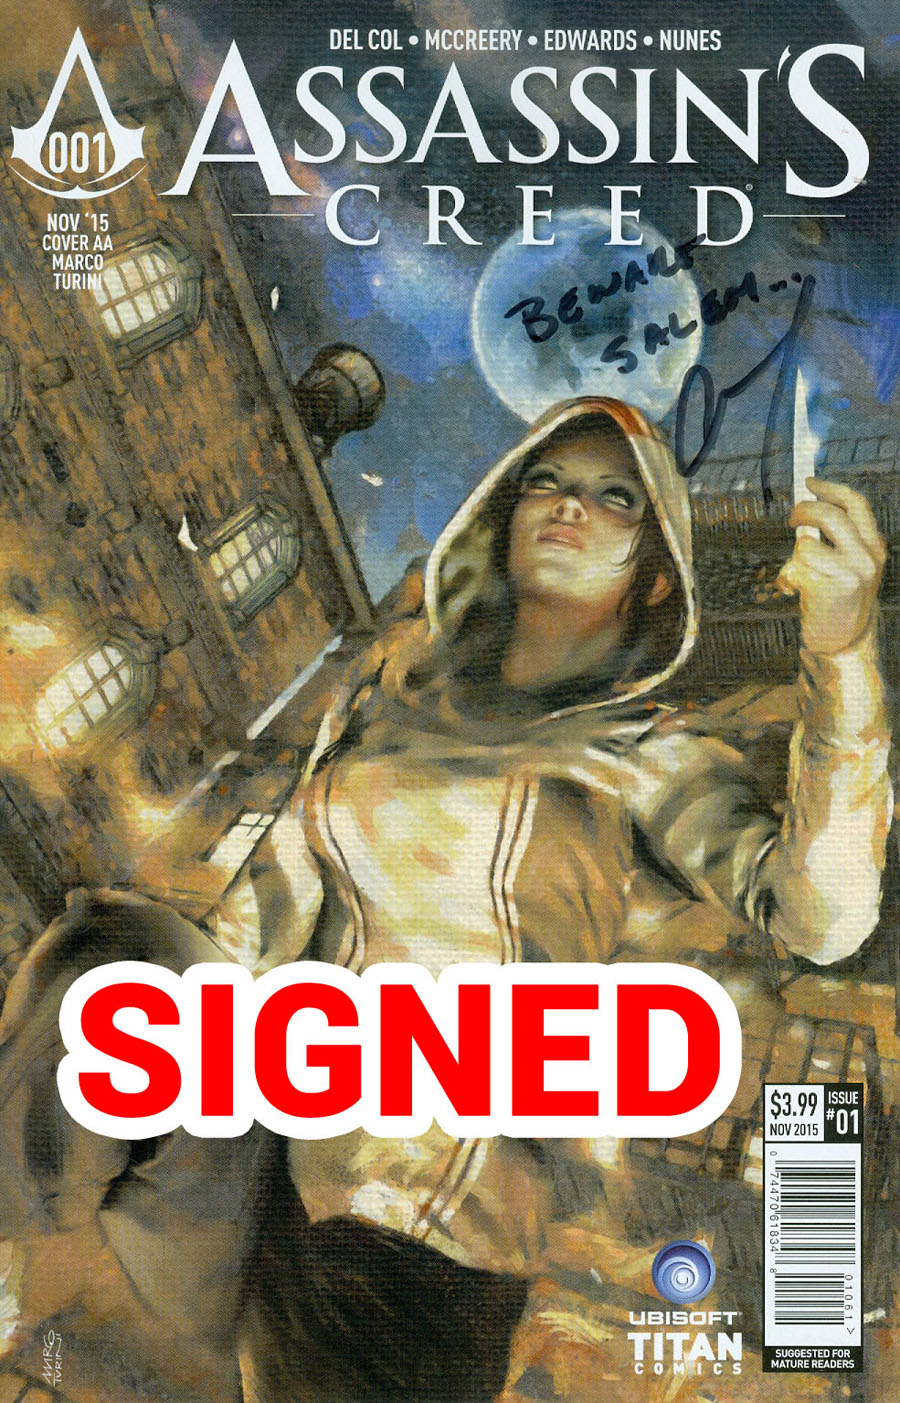 Assassins Creed #1 Cover J Variant Marco Turini Cover Signed By Anthony Del Col